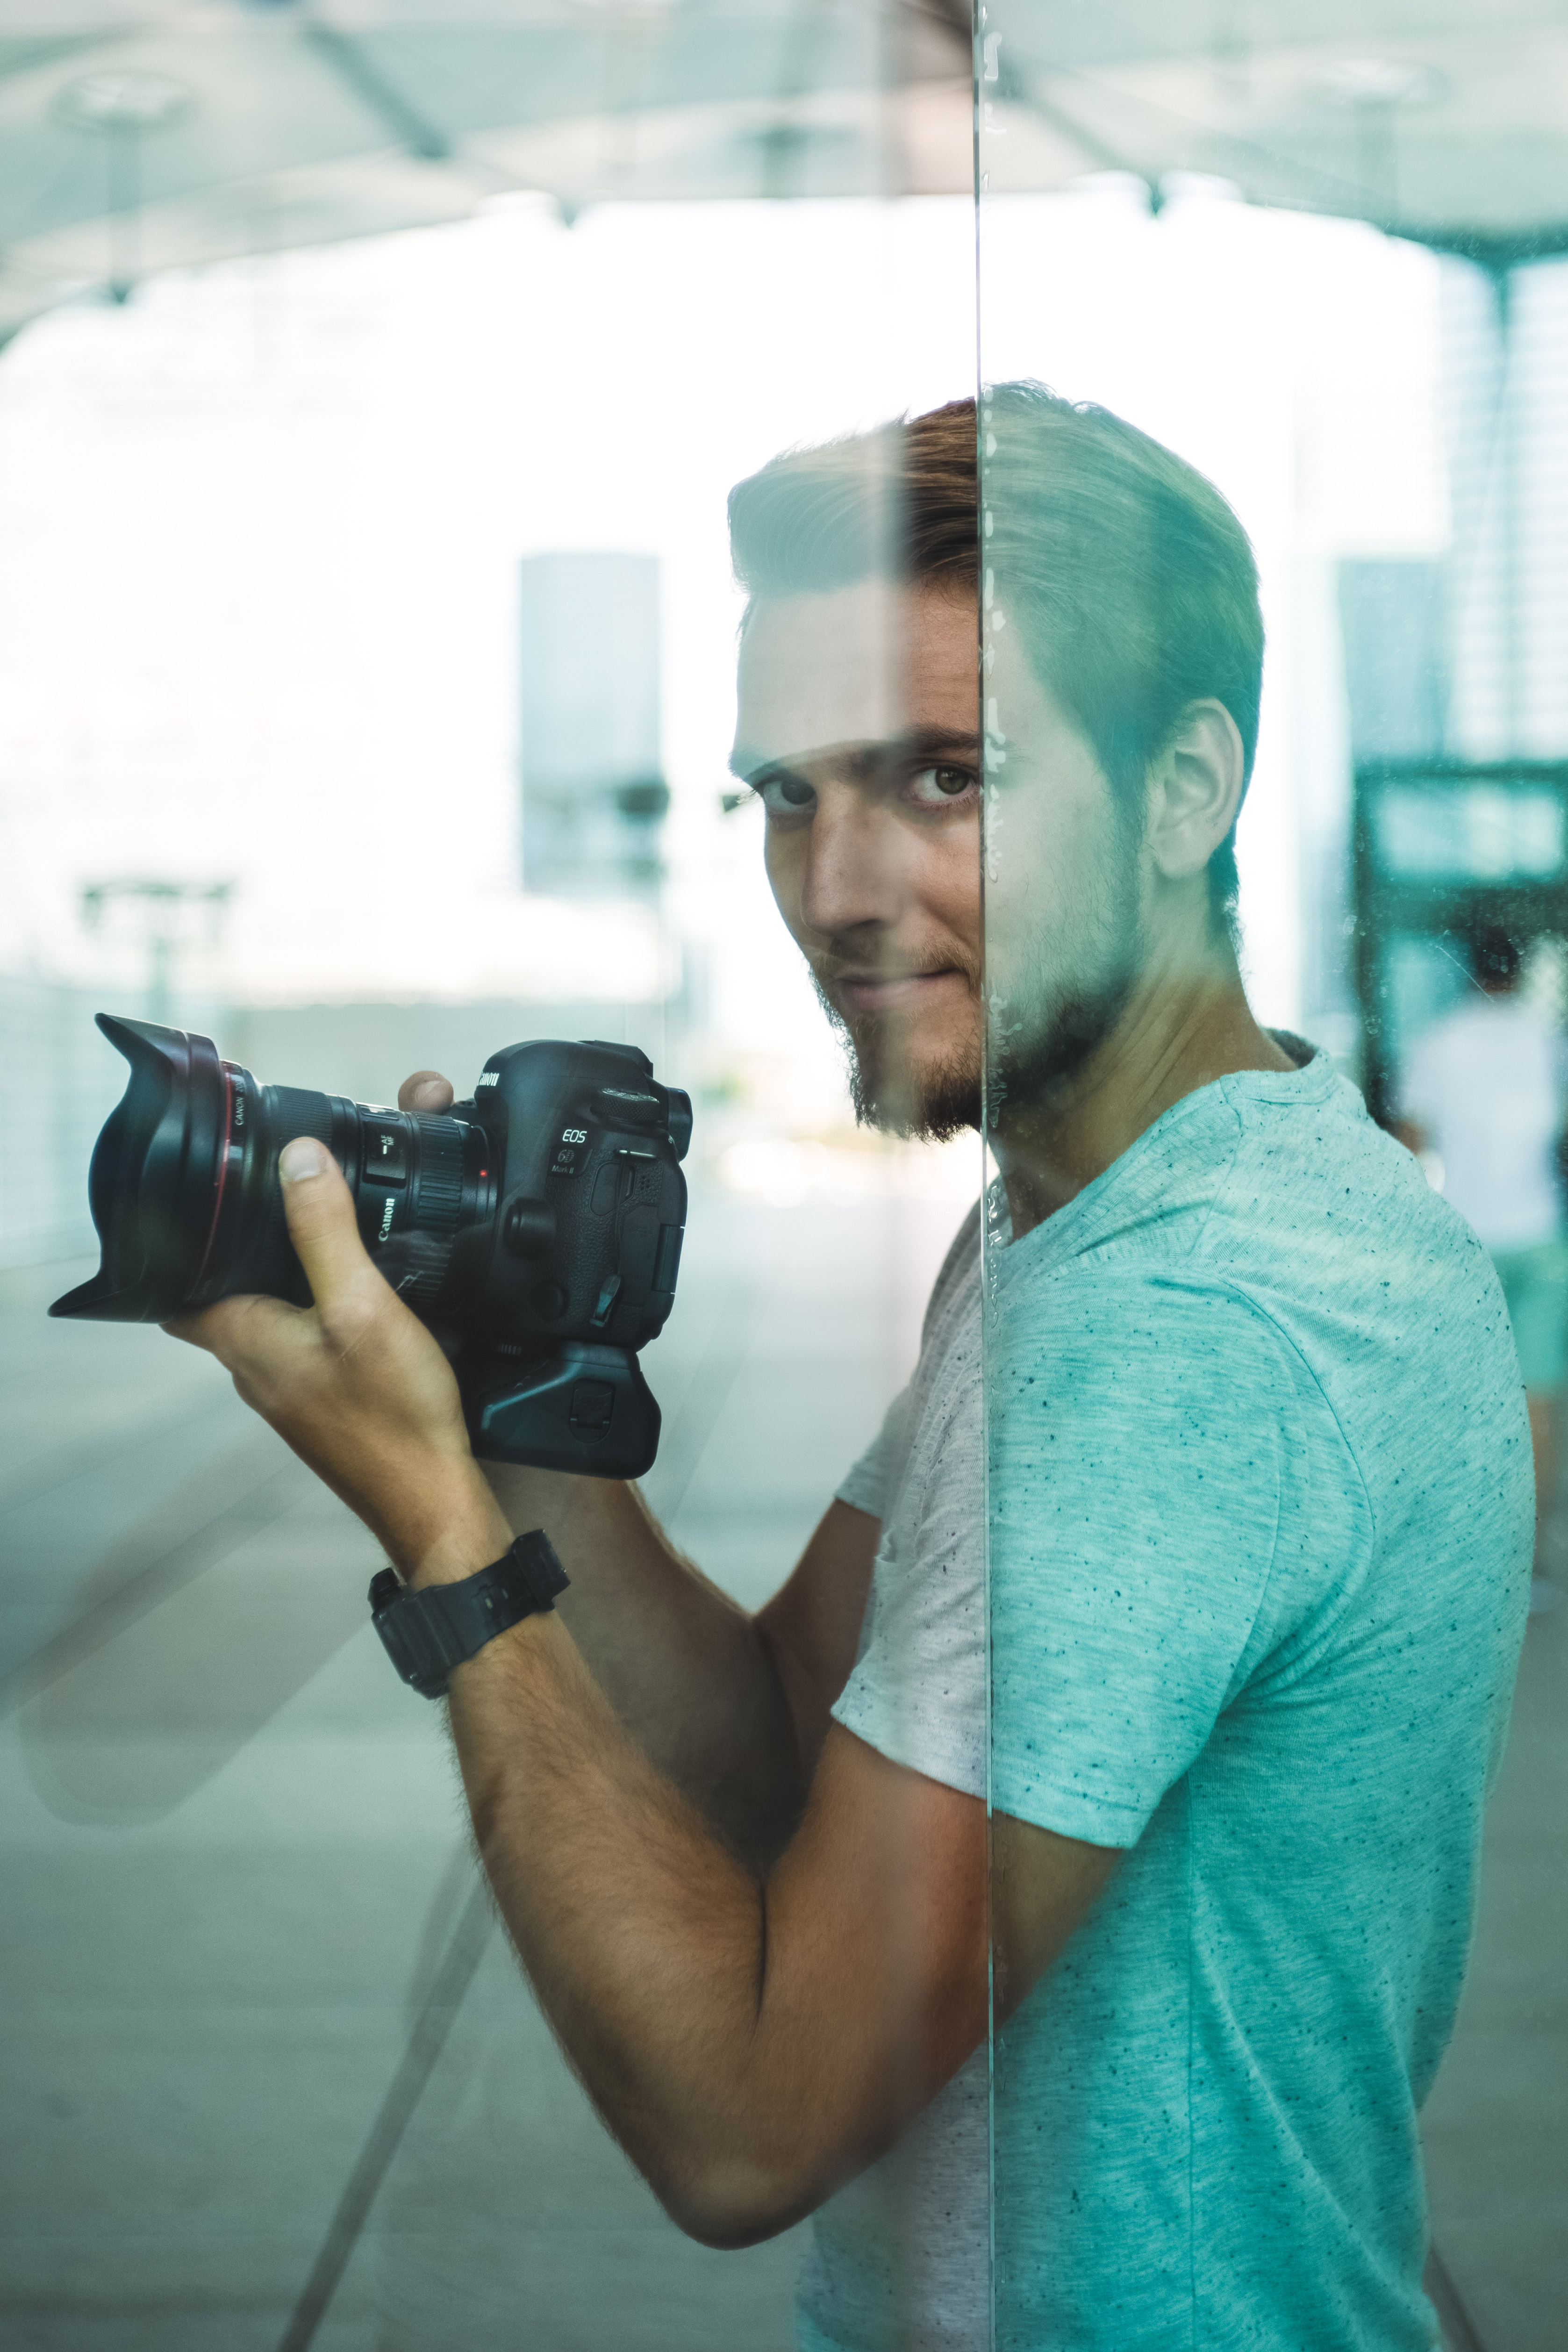 Behind the scene photography of Maxime Horlaville - MxHpics